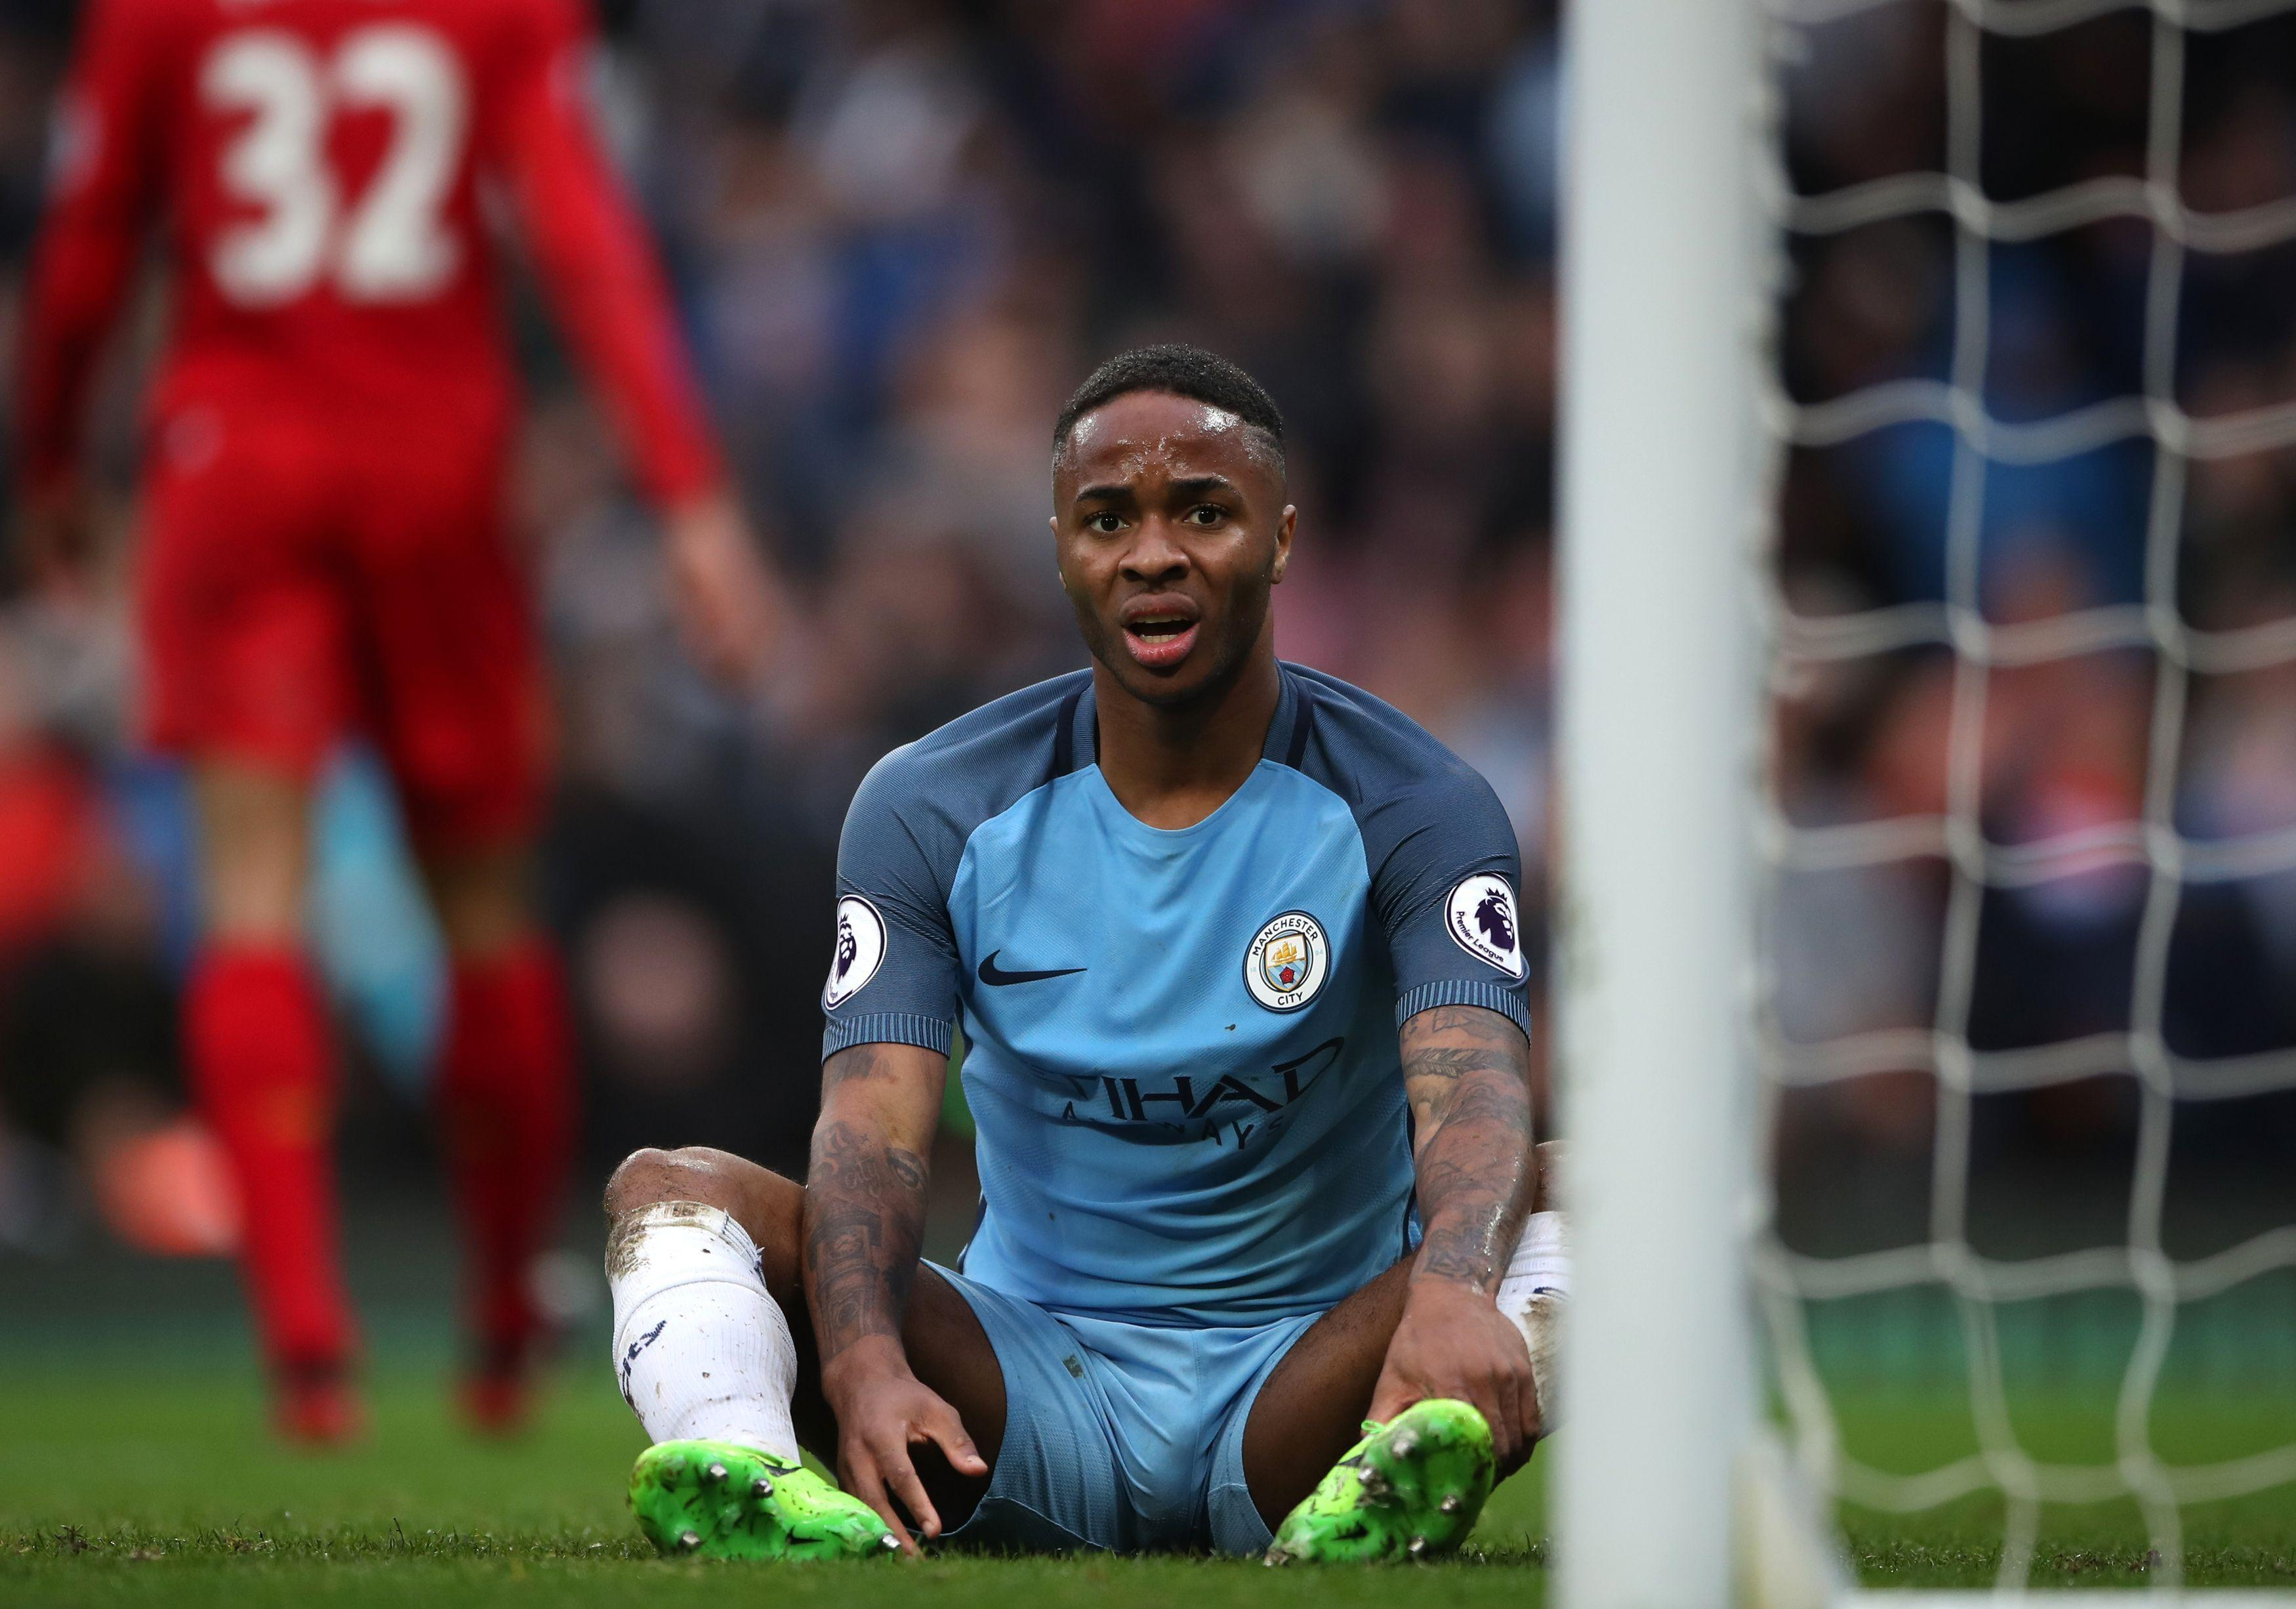 Not a happy return for Sterling